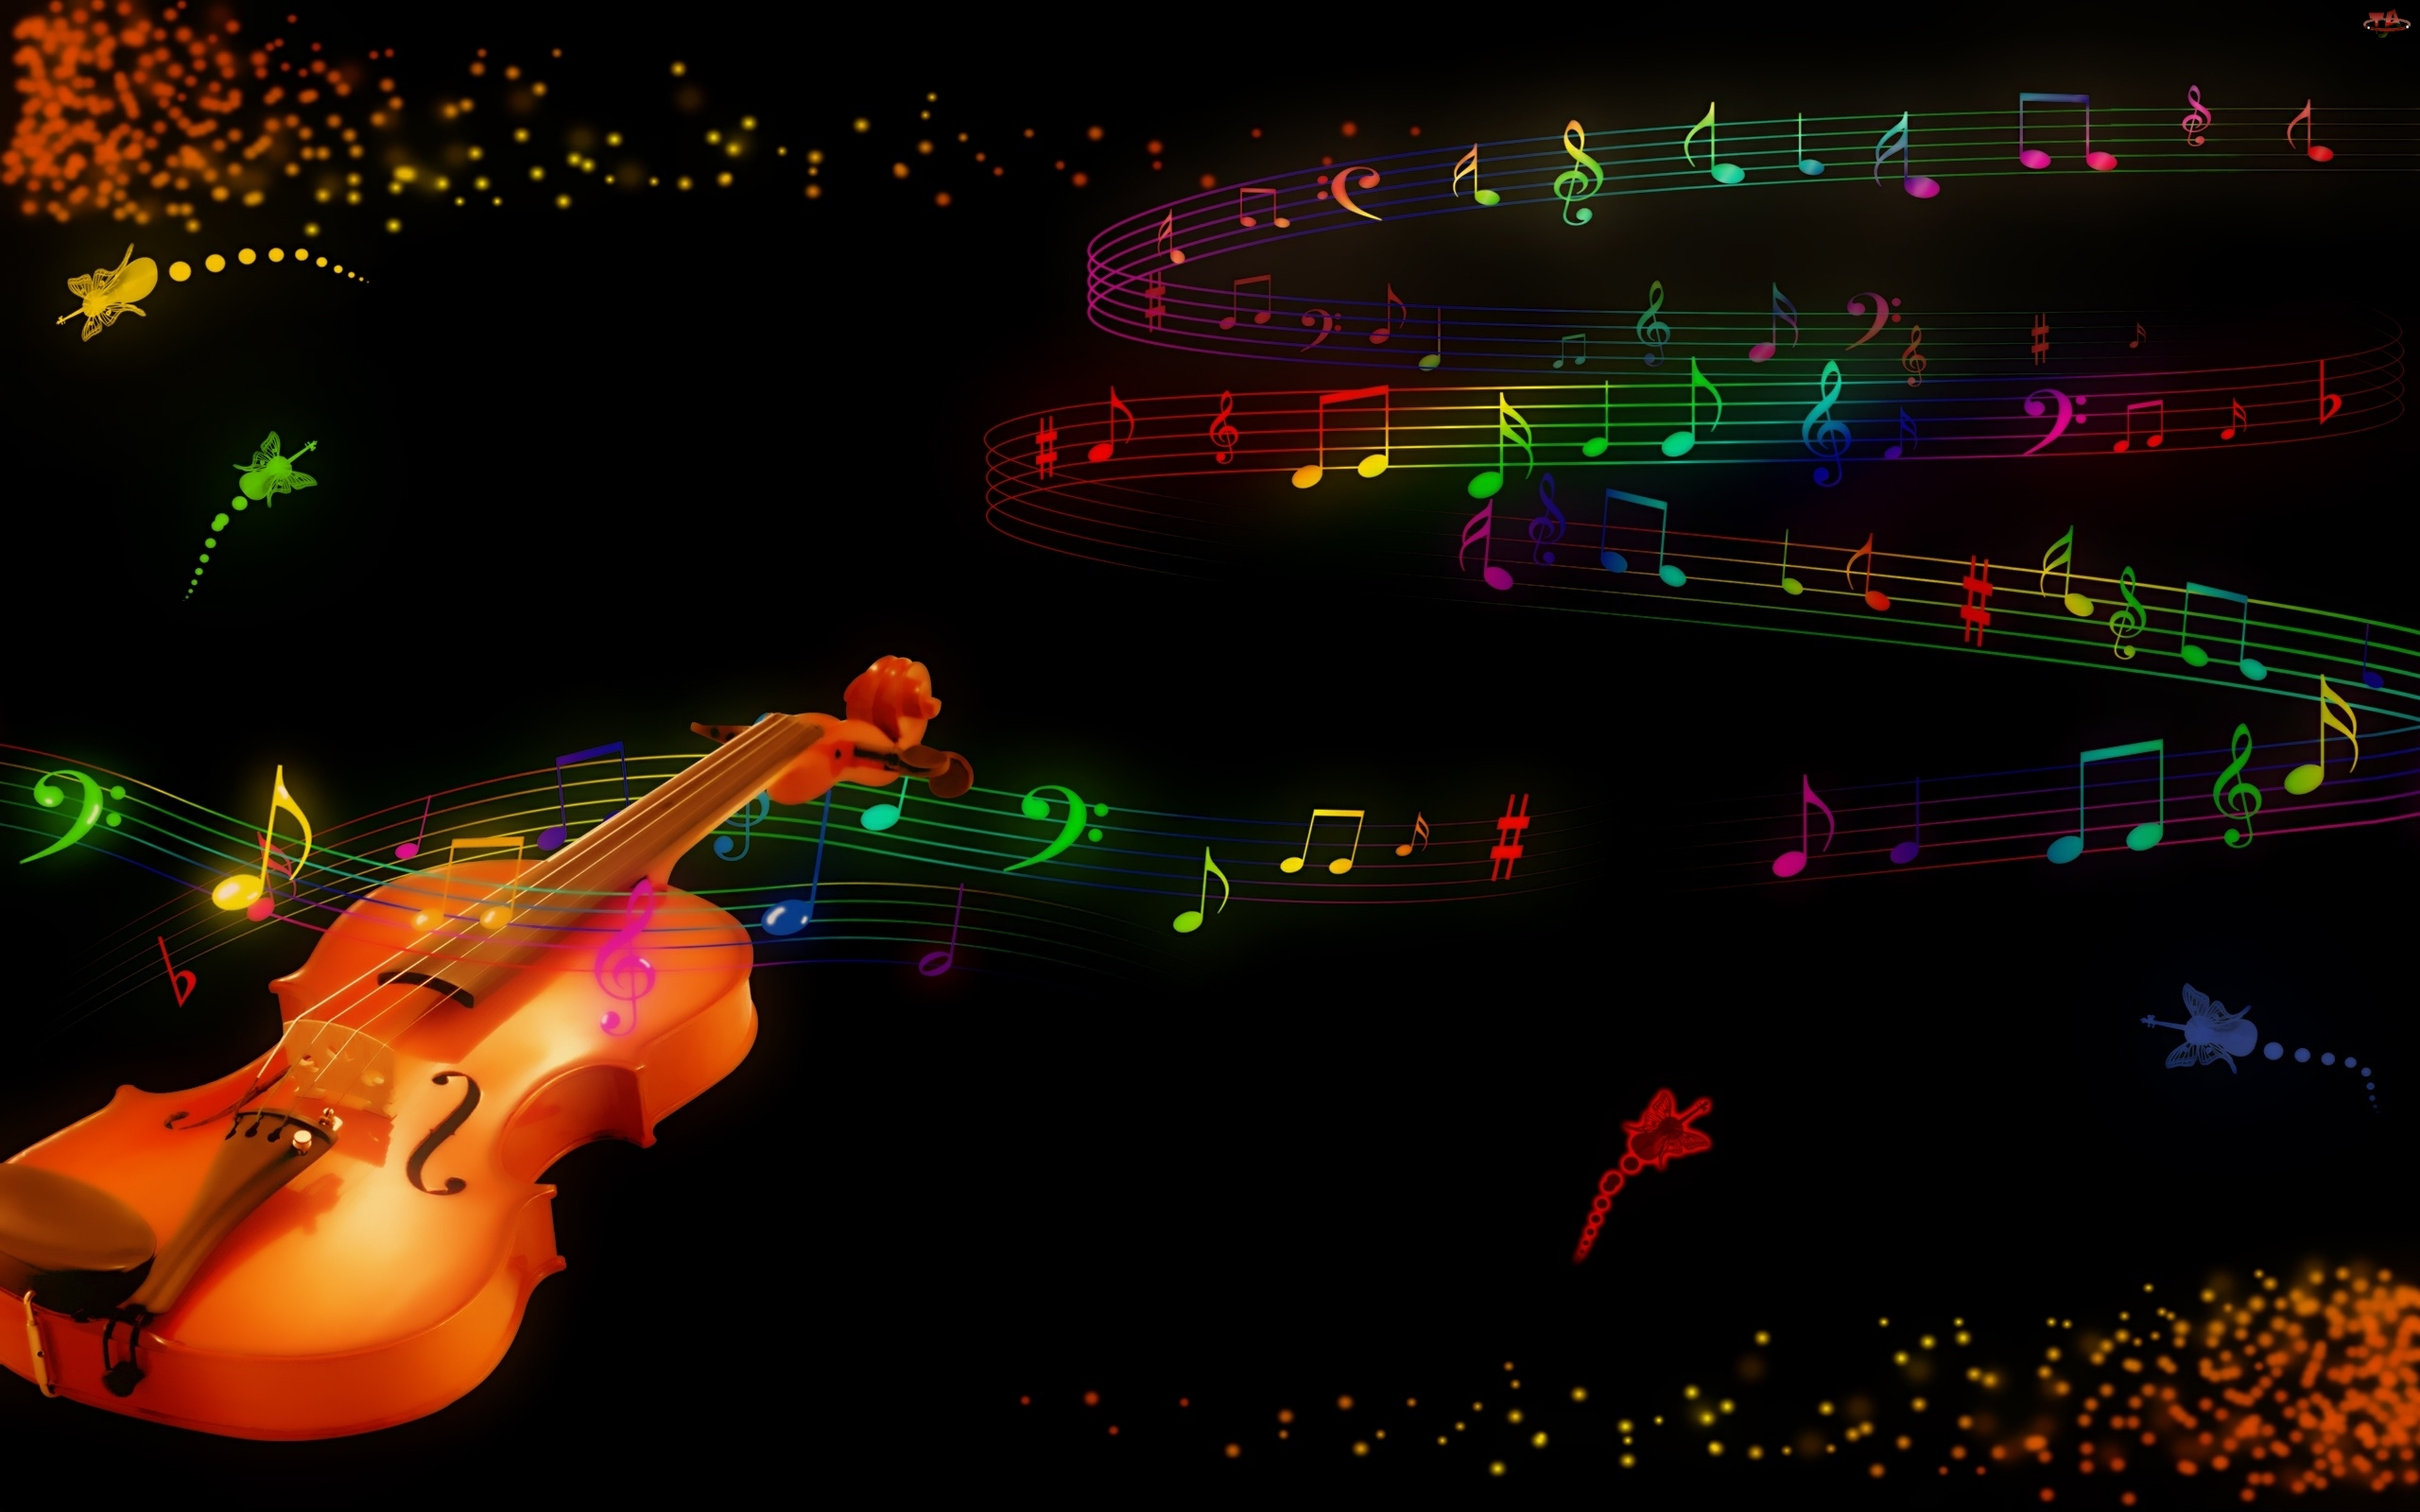 Abstract Art Music Notes Background 1 Hd Wallpapers: Gitara Nutki Wallpapers